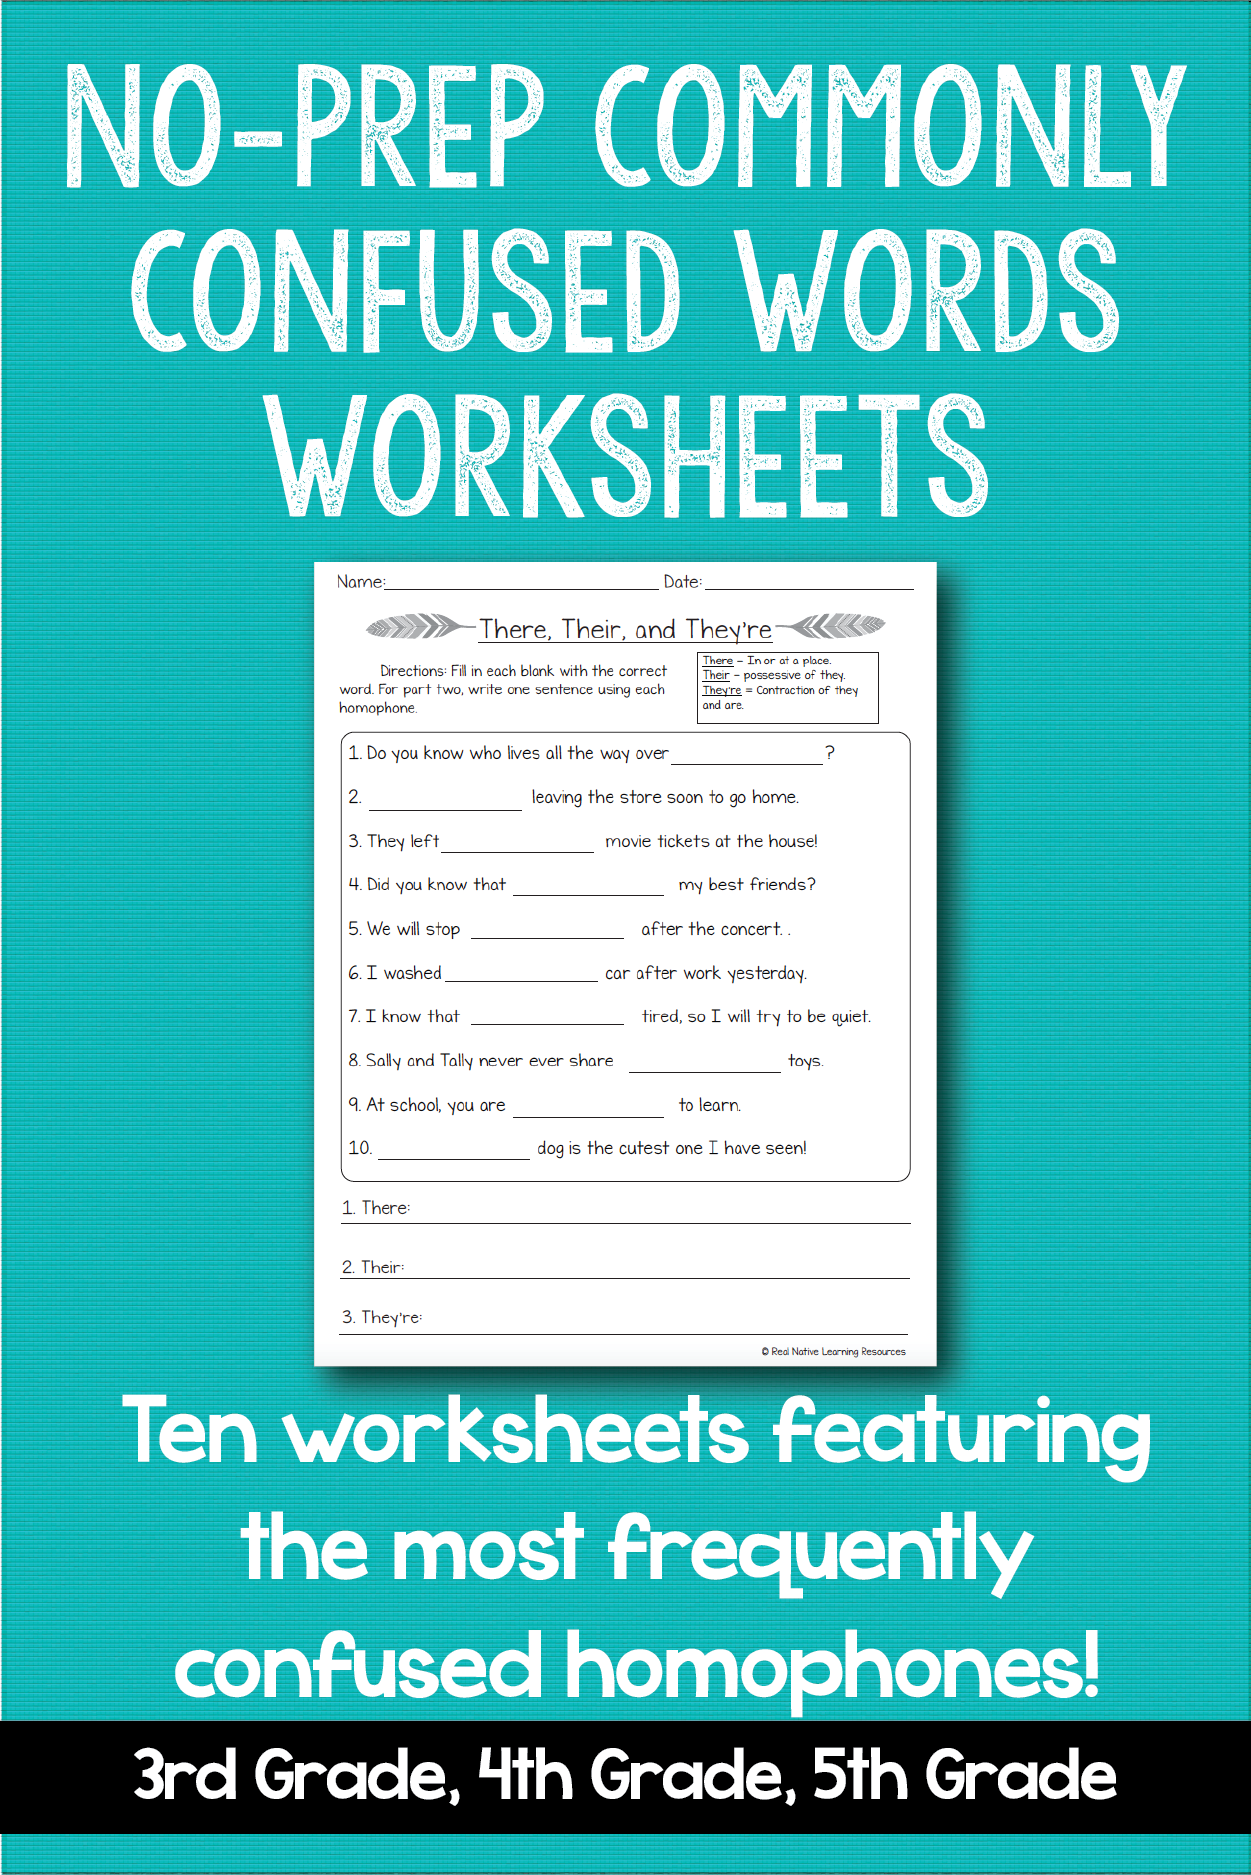 Common Homophones No Prep Worksheets